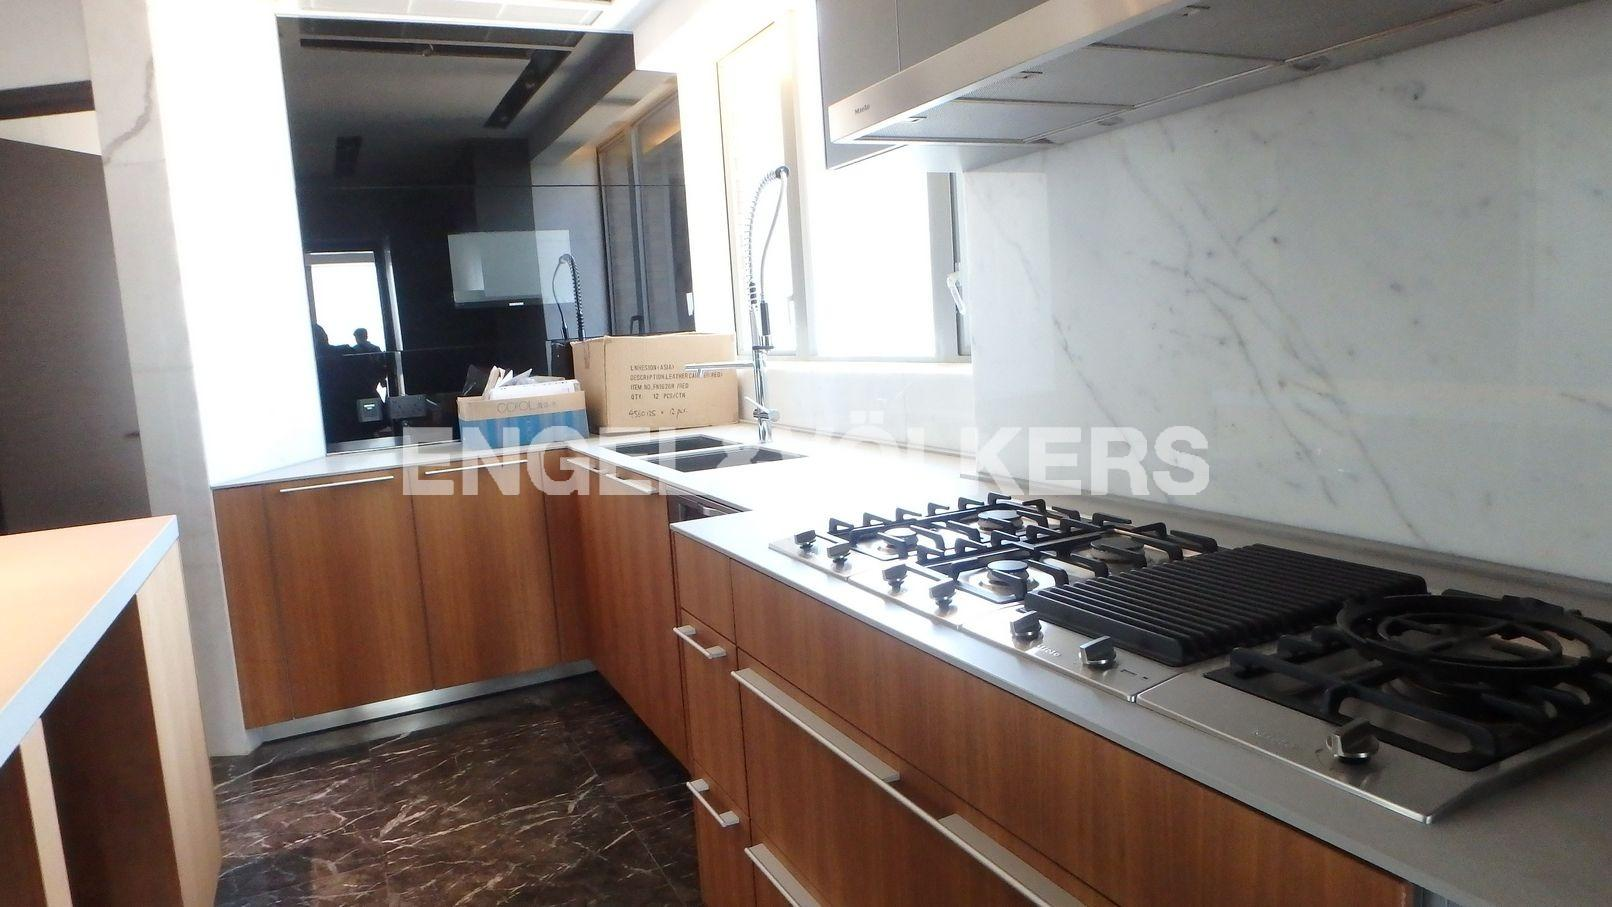 Apartment in Mid Level West / Pok Fu Lam - 39 CONDUIT ROAD 天匯